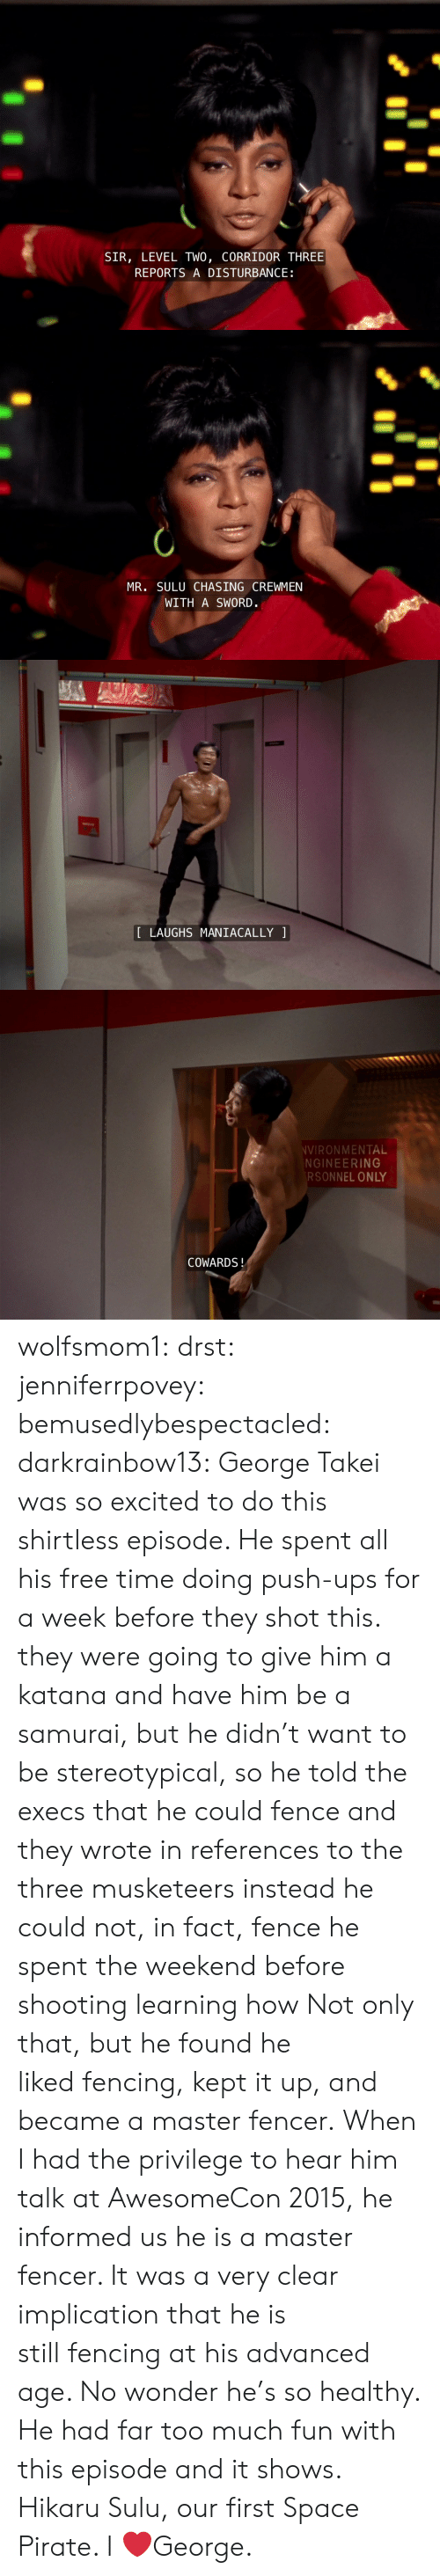 Samurai, Target, and Too Much: SIR, LEVEL TWO, CORRIDOR THREE  REPORTS A DISTURBANCE   MR. SULU CHASING CREWMEN  WITH A SWORD.   LAUGHS MANIACALLY   VIRONMENTAL  NGINEERING  RSONNEL ONLY  COWARDS! wolfsmom1:  drst:   jenniferrpovey:  bemusedlybespectacled:  darkrainbow13:  George Takei was so excited to do this shirtless episode. He spent all his free time doing push-ups for a week before they shot this.  they were going to give him a katana and have him be a samurai, but he didn't want to be stereotypical, so he told the execs that he could fence and they wrote in references to the three musketeers instead he could not, in fact, fence he spent the weekend before shooting learning how  Not only that, but he found he liked fencing, kept it up, and became a master fencer. When I had the privilege to hear him talk at AwesomeCon 2015, he informed us he is a master fencer. It was a very clear implication that he is still fencing at his advanced age. No wonder he's so healthy. He had far too much fun with this episode and it shows.   Hikaru Sulu, our first Space Pirate.    I ❤️George.